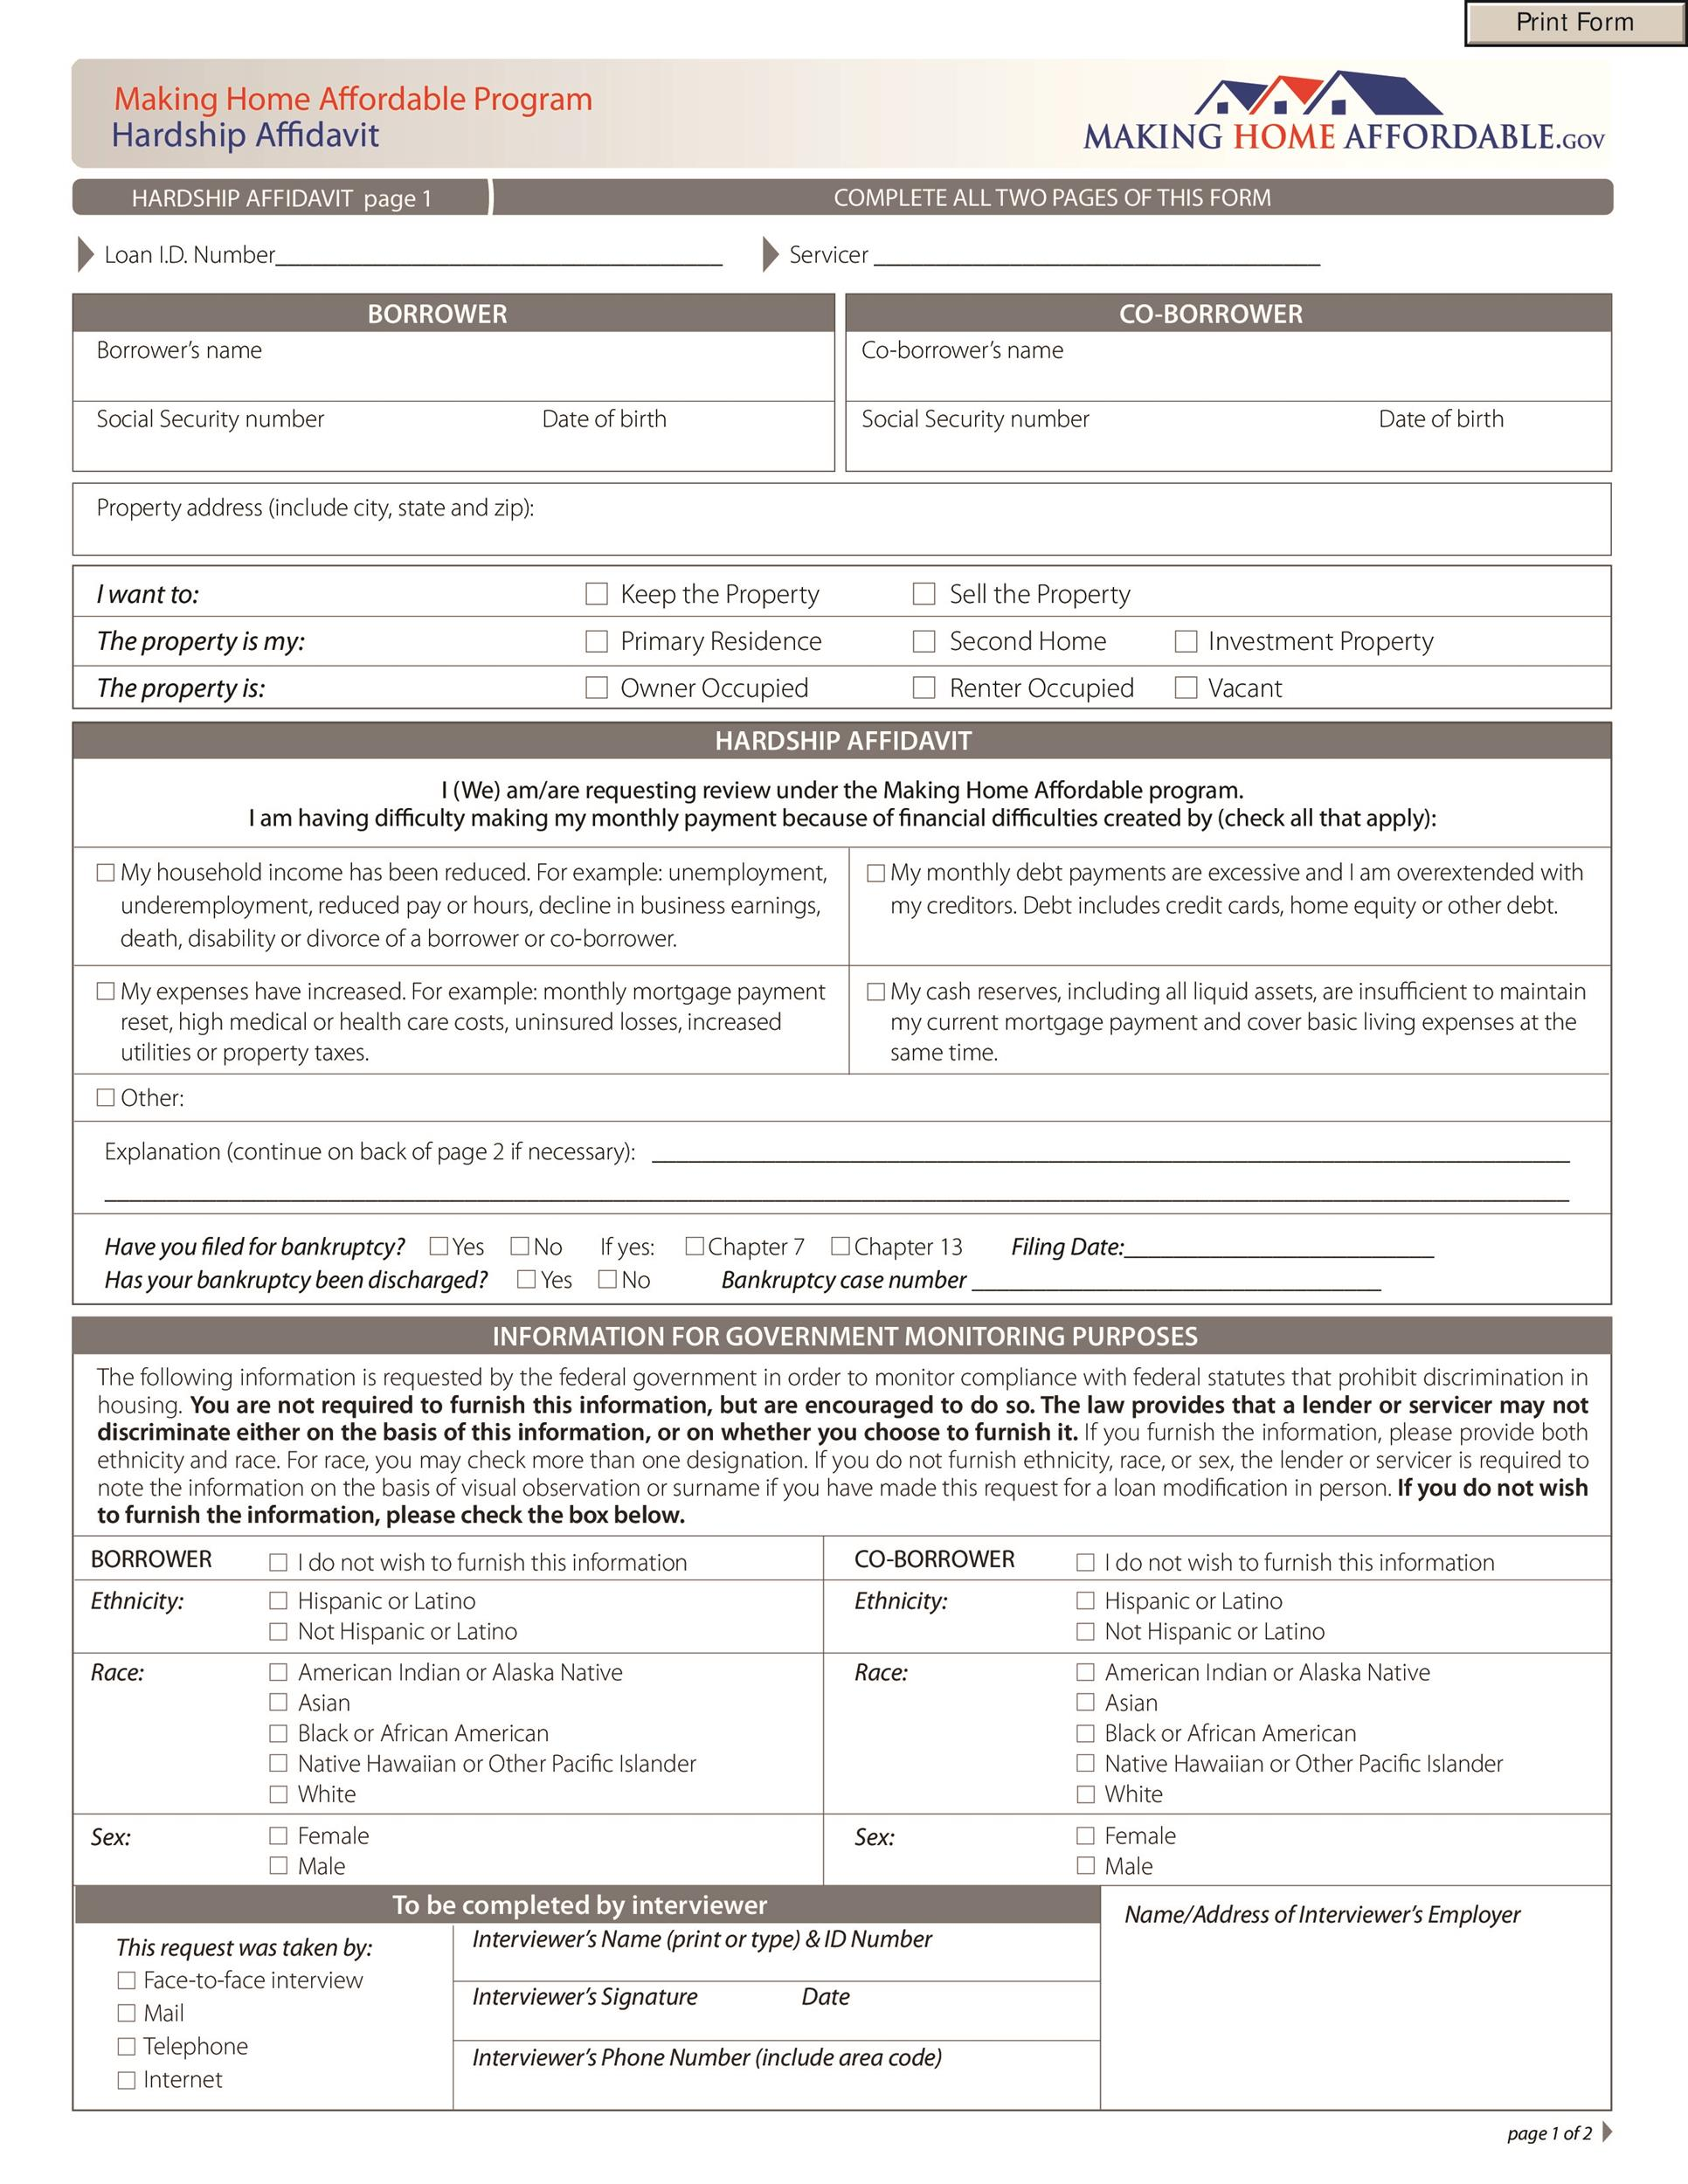 48 Sample Affidavit Forms Templates Affidavit of Support Form – Affidavit of Support Form